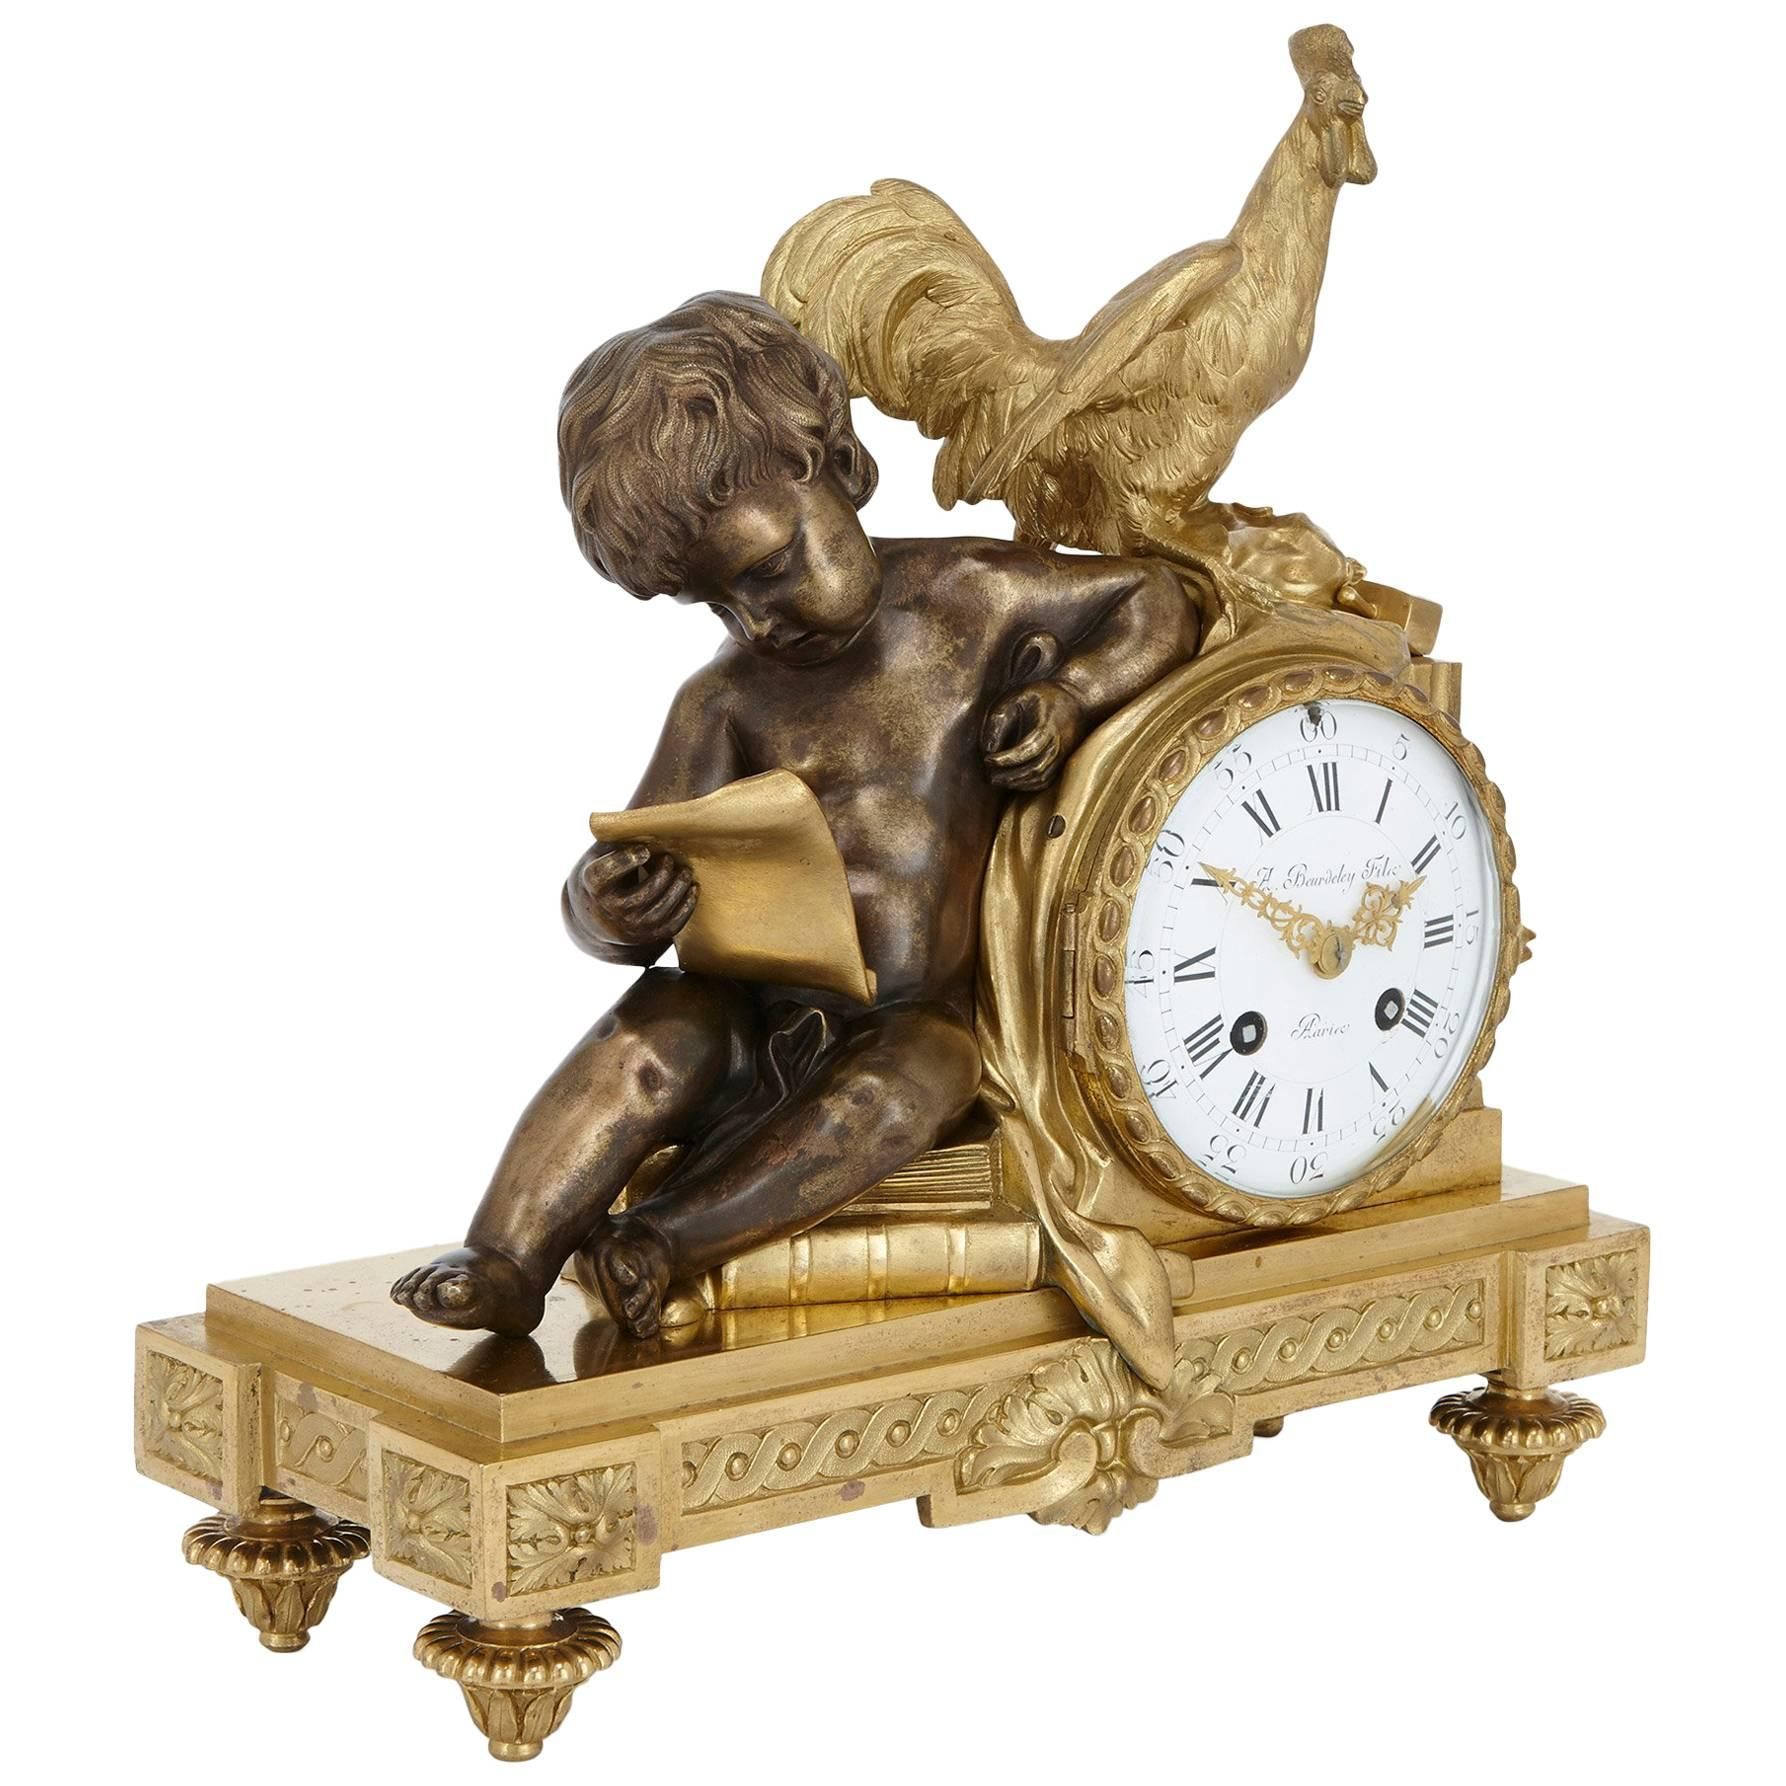 French Silvered Bronze and Ormolu Neoclassical Style Mantel Clock by Beurdeley